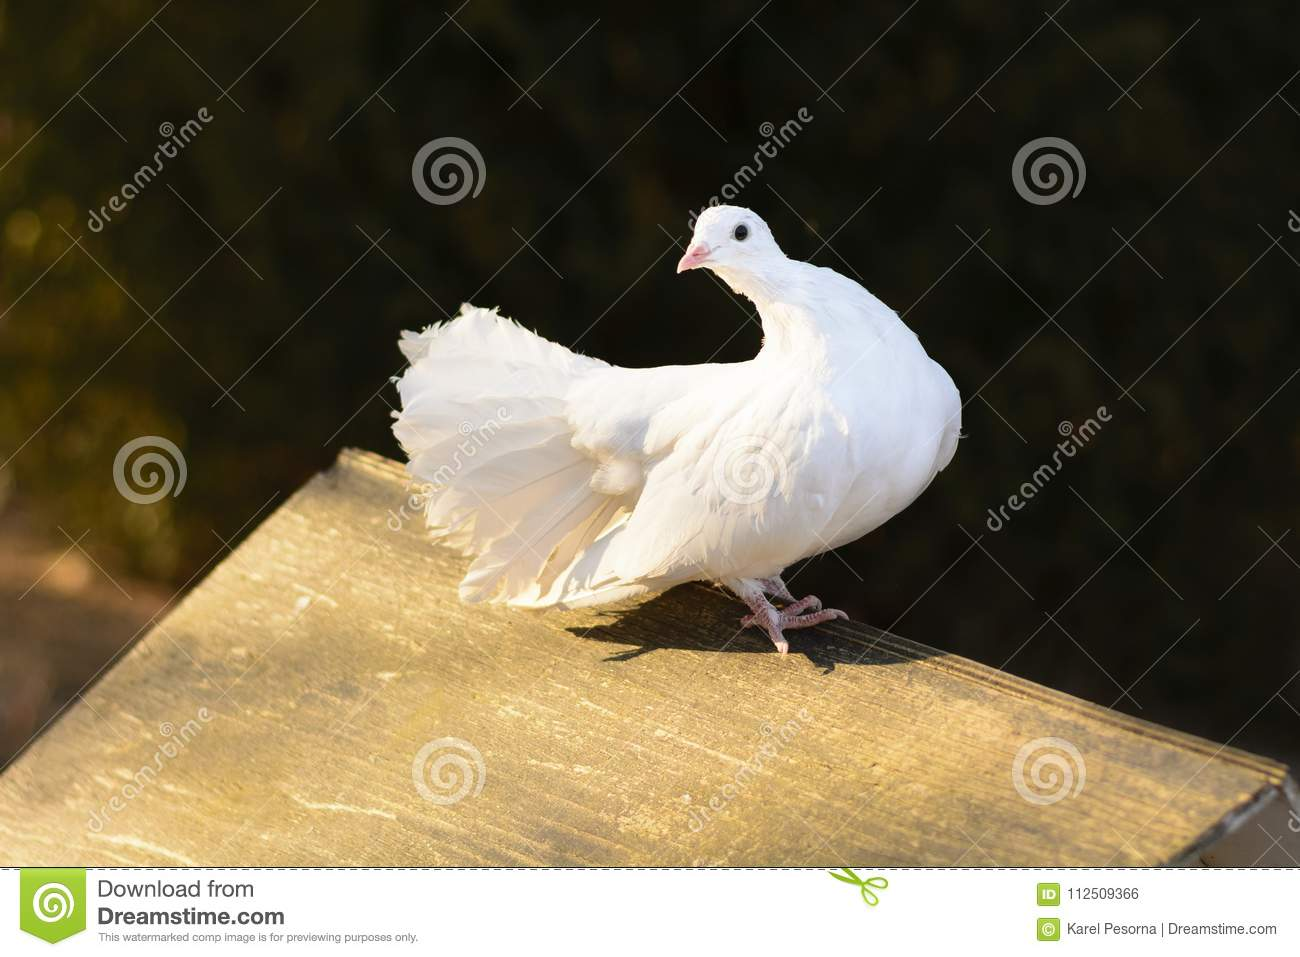 A White Pigeon Sitting On A Wooden Feeder At Sunset Stock Photo